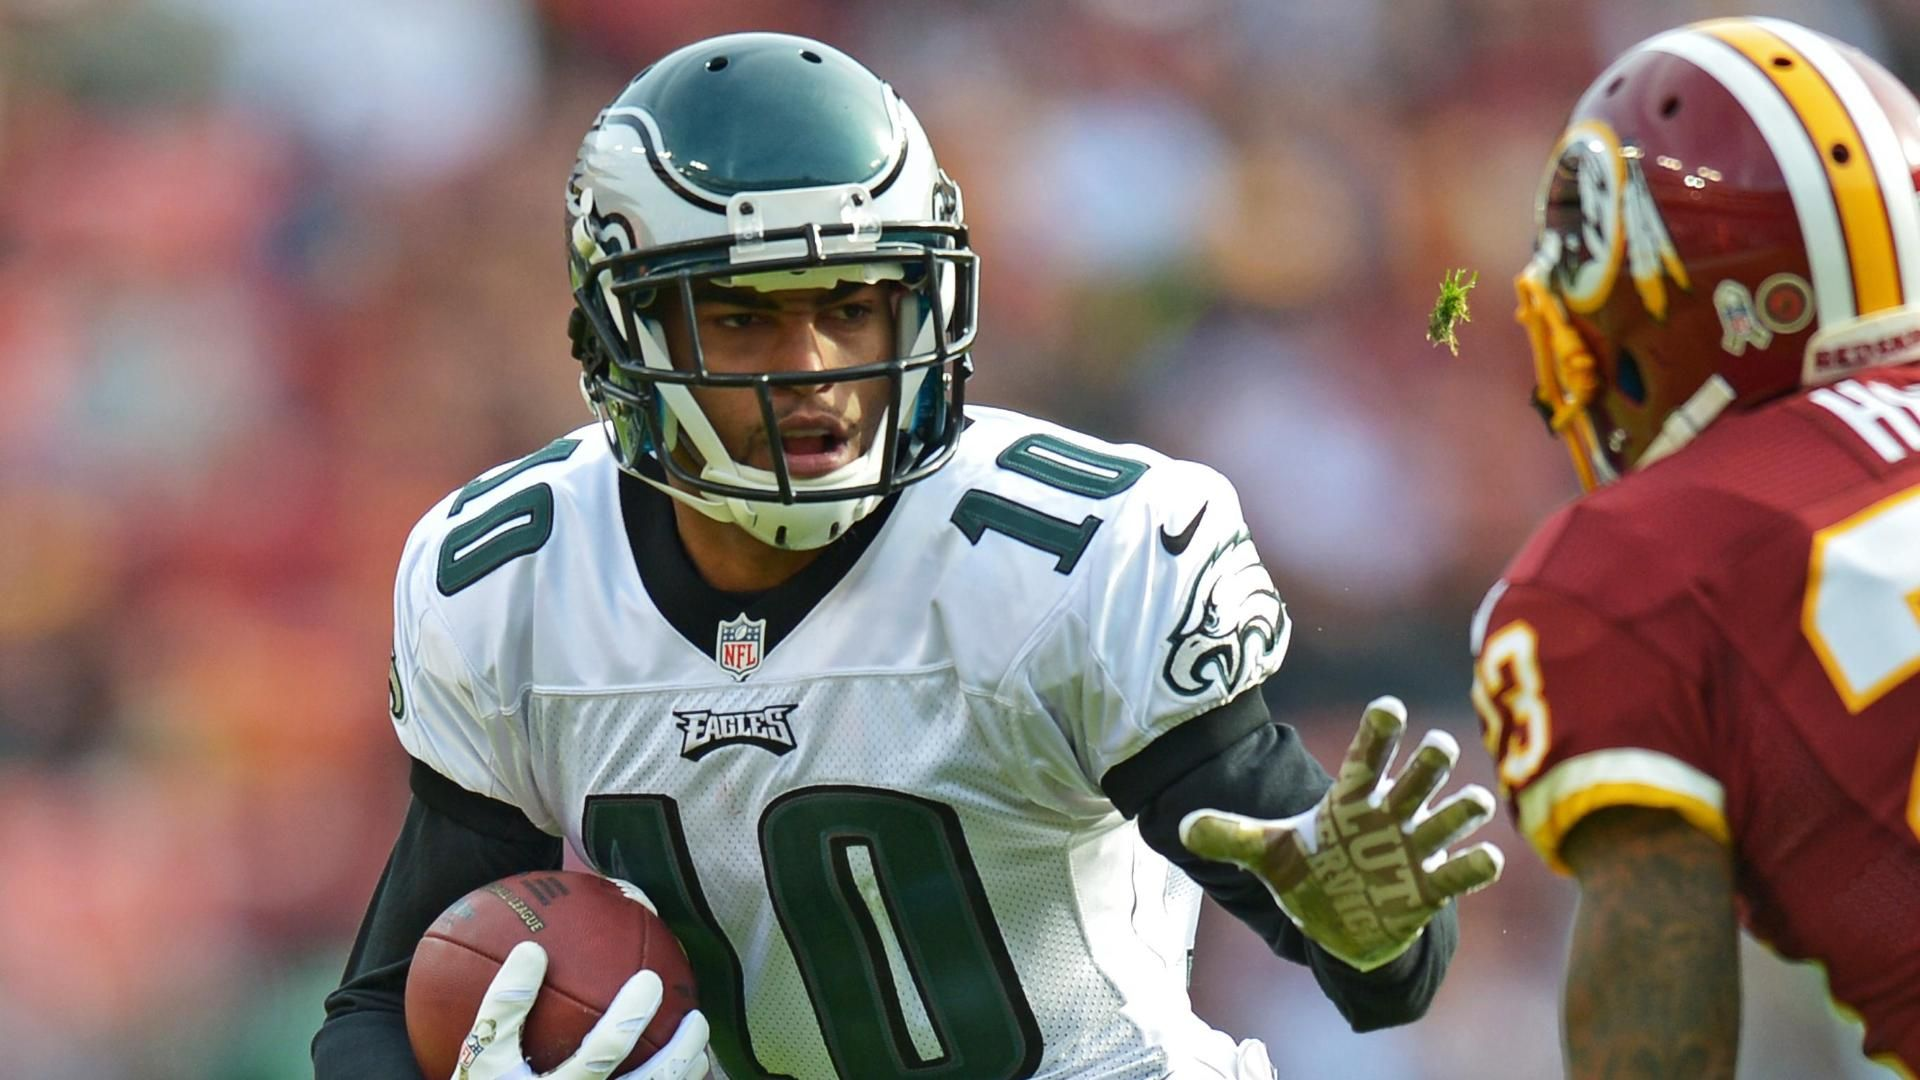 Jackson Release A Football Decision For Eagles